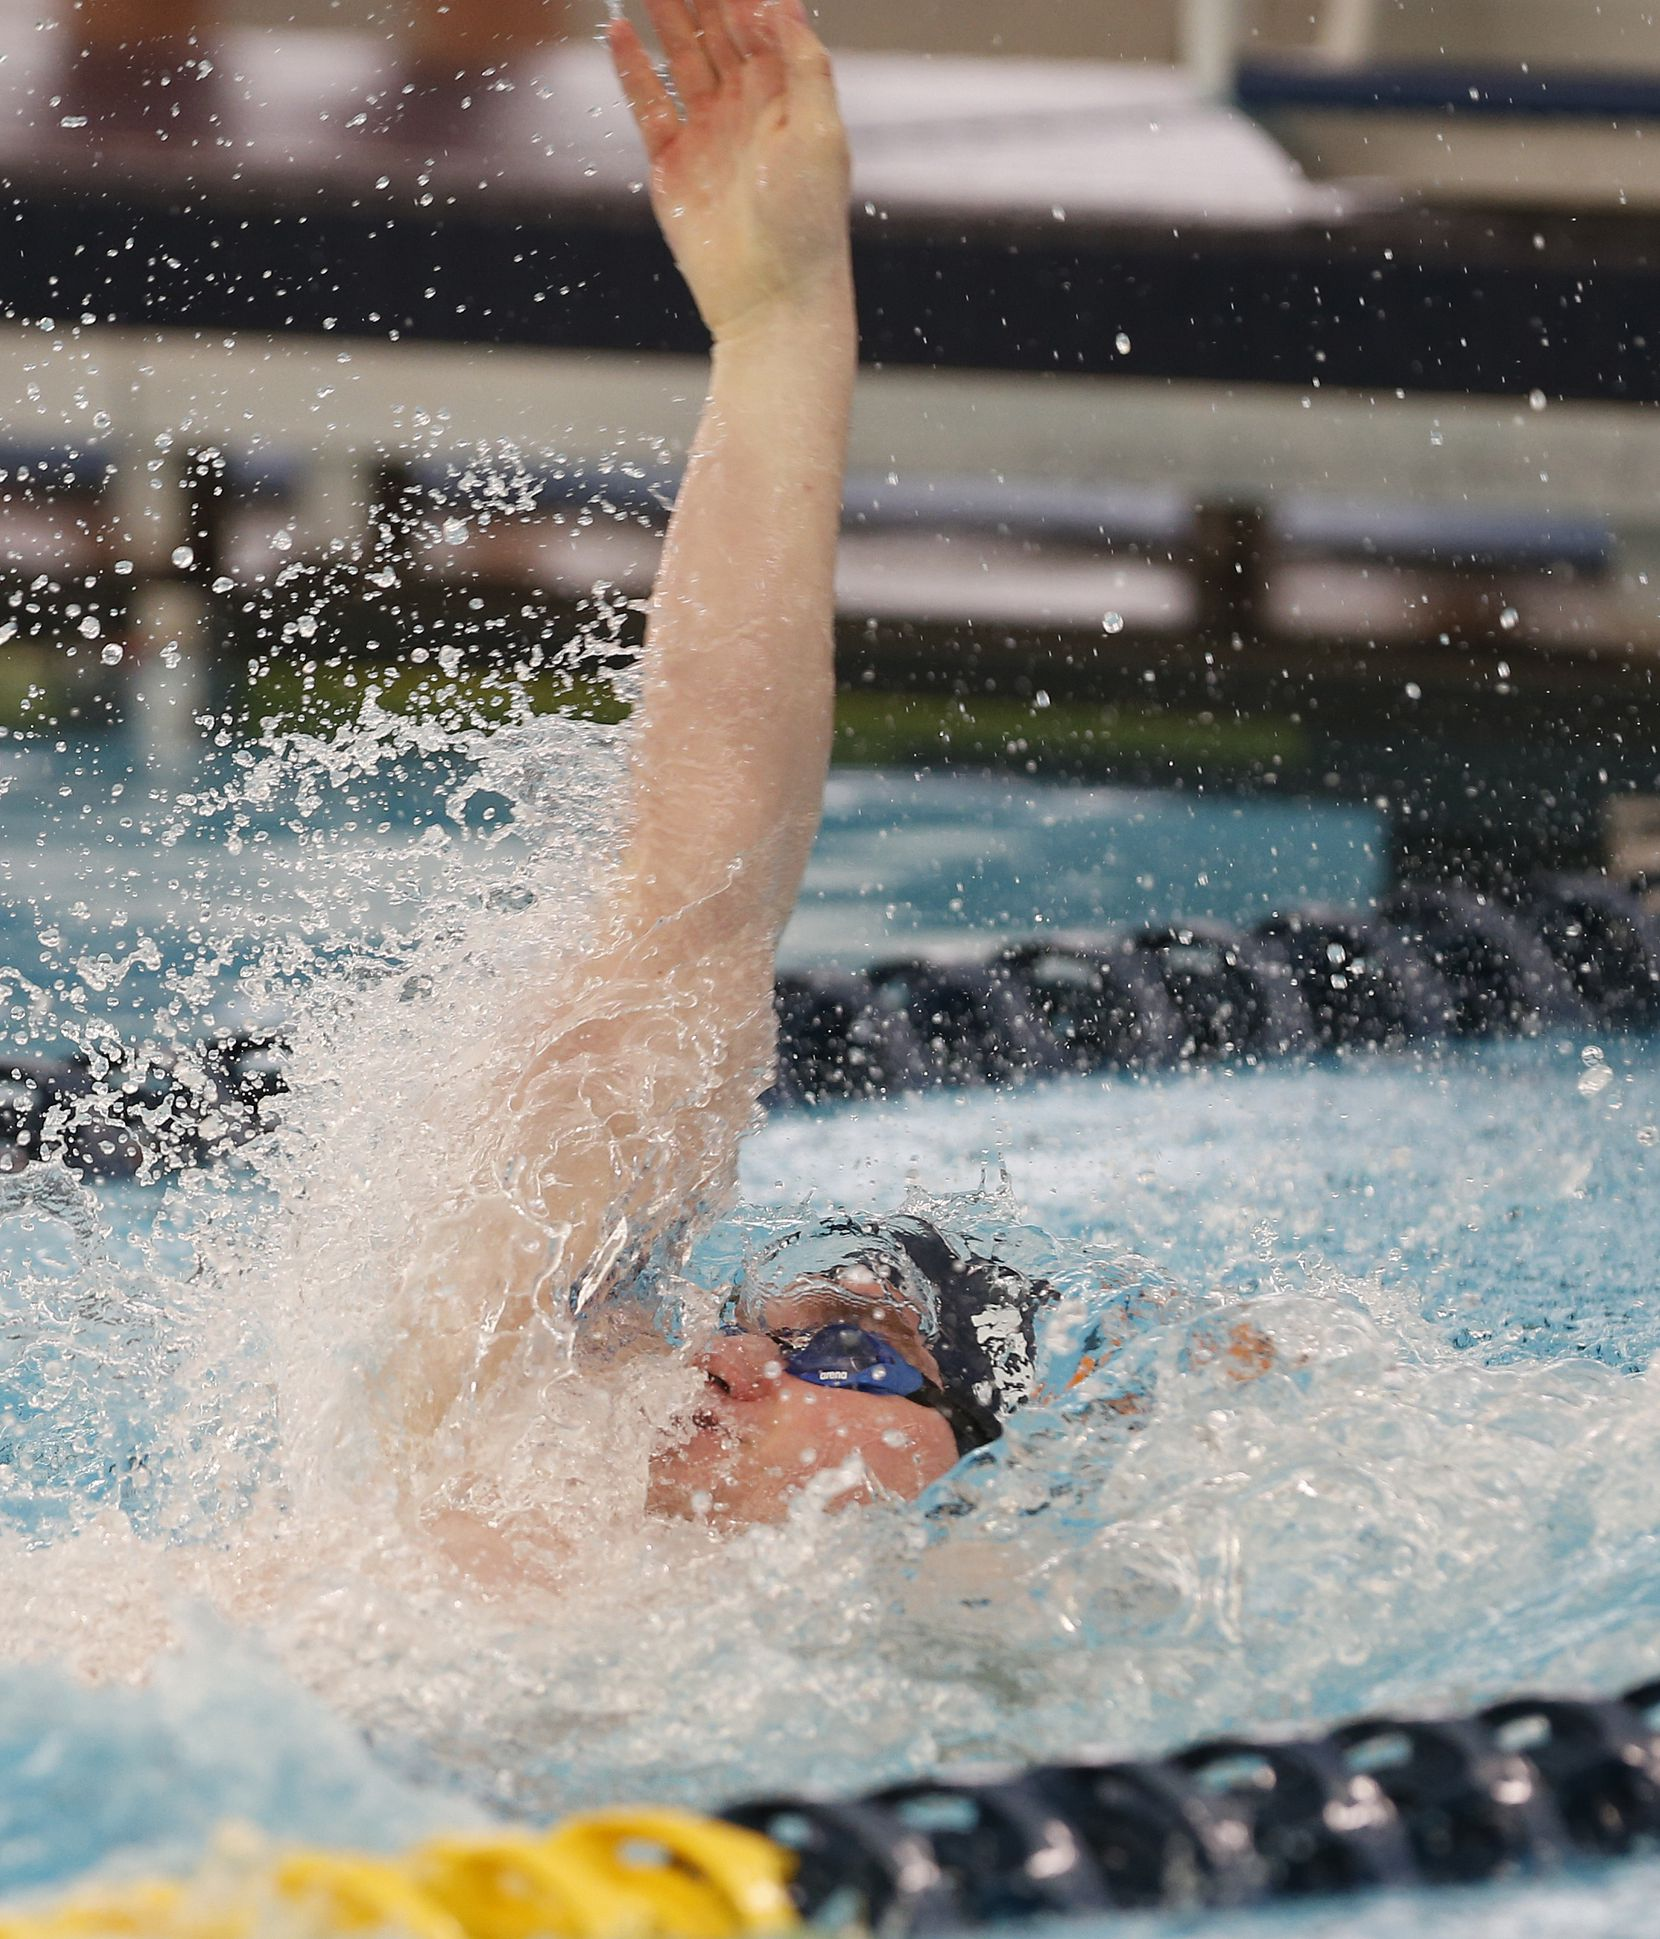 Jonathan MiChareis in backstroke for 200 yard Medley Relay. UIL boys 5A swim finals on Saturday, Feb.27,2021 at Bill Walker Pool and Josh Davis Natatorium